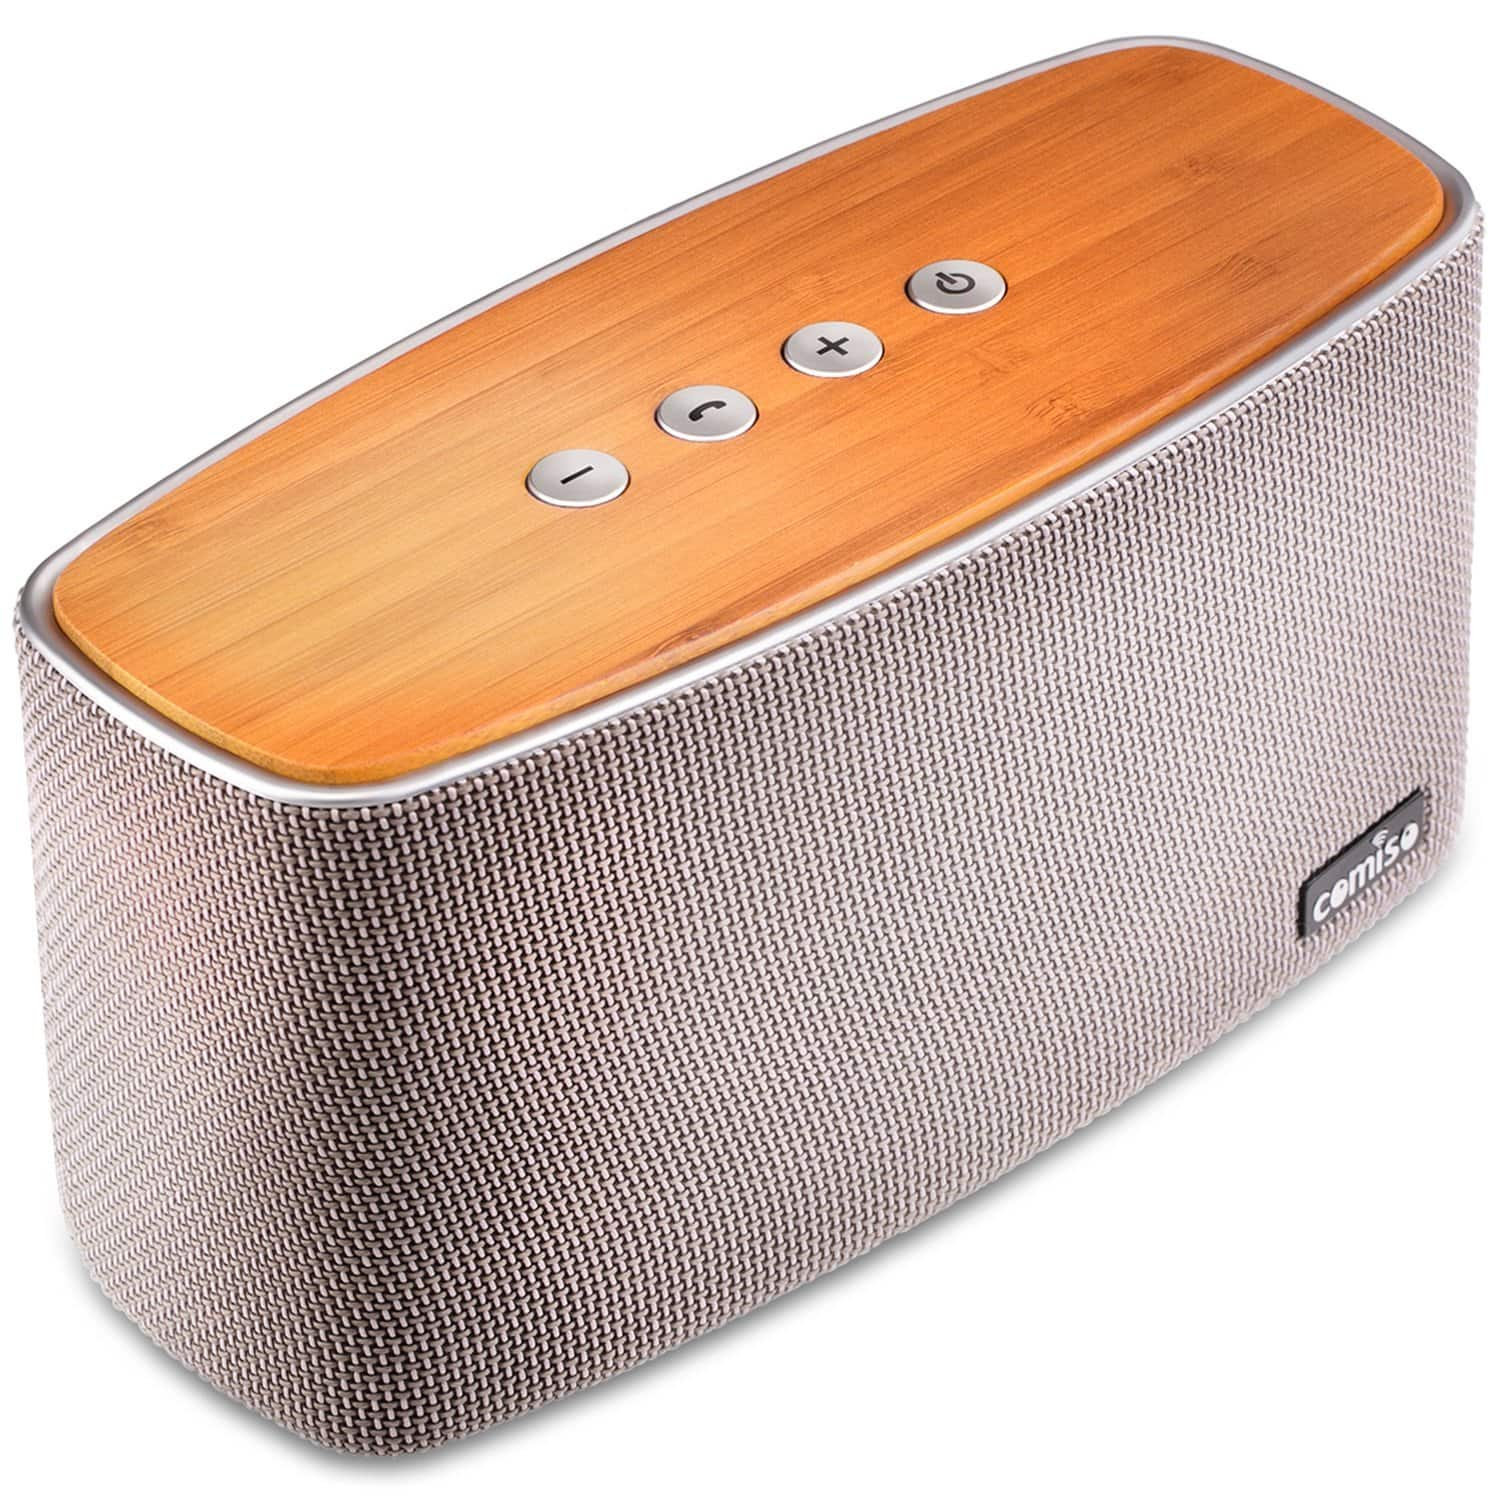 COMISO 30W Bamboo Wood Bluetooth Speaker with Subwoofer- $29.99 AC @ Amazon